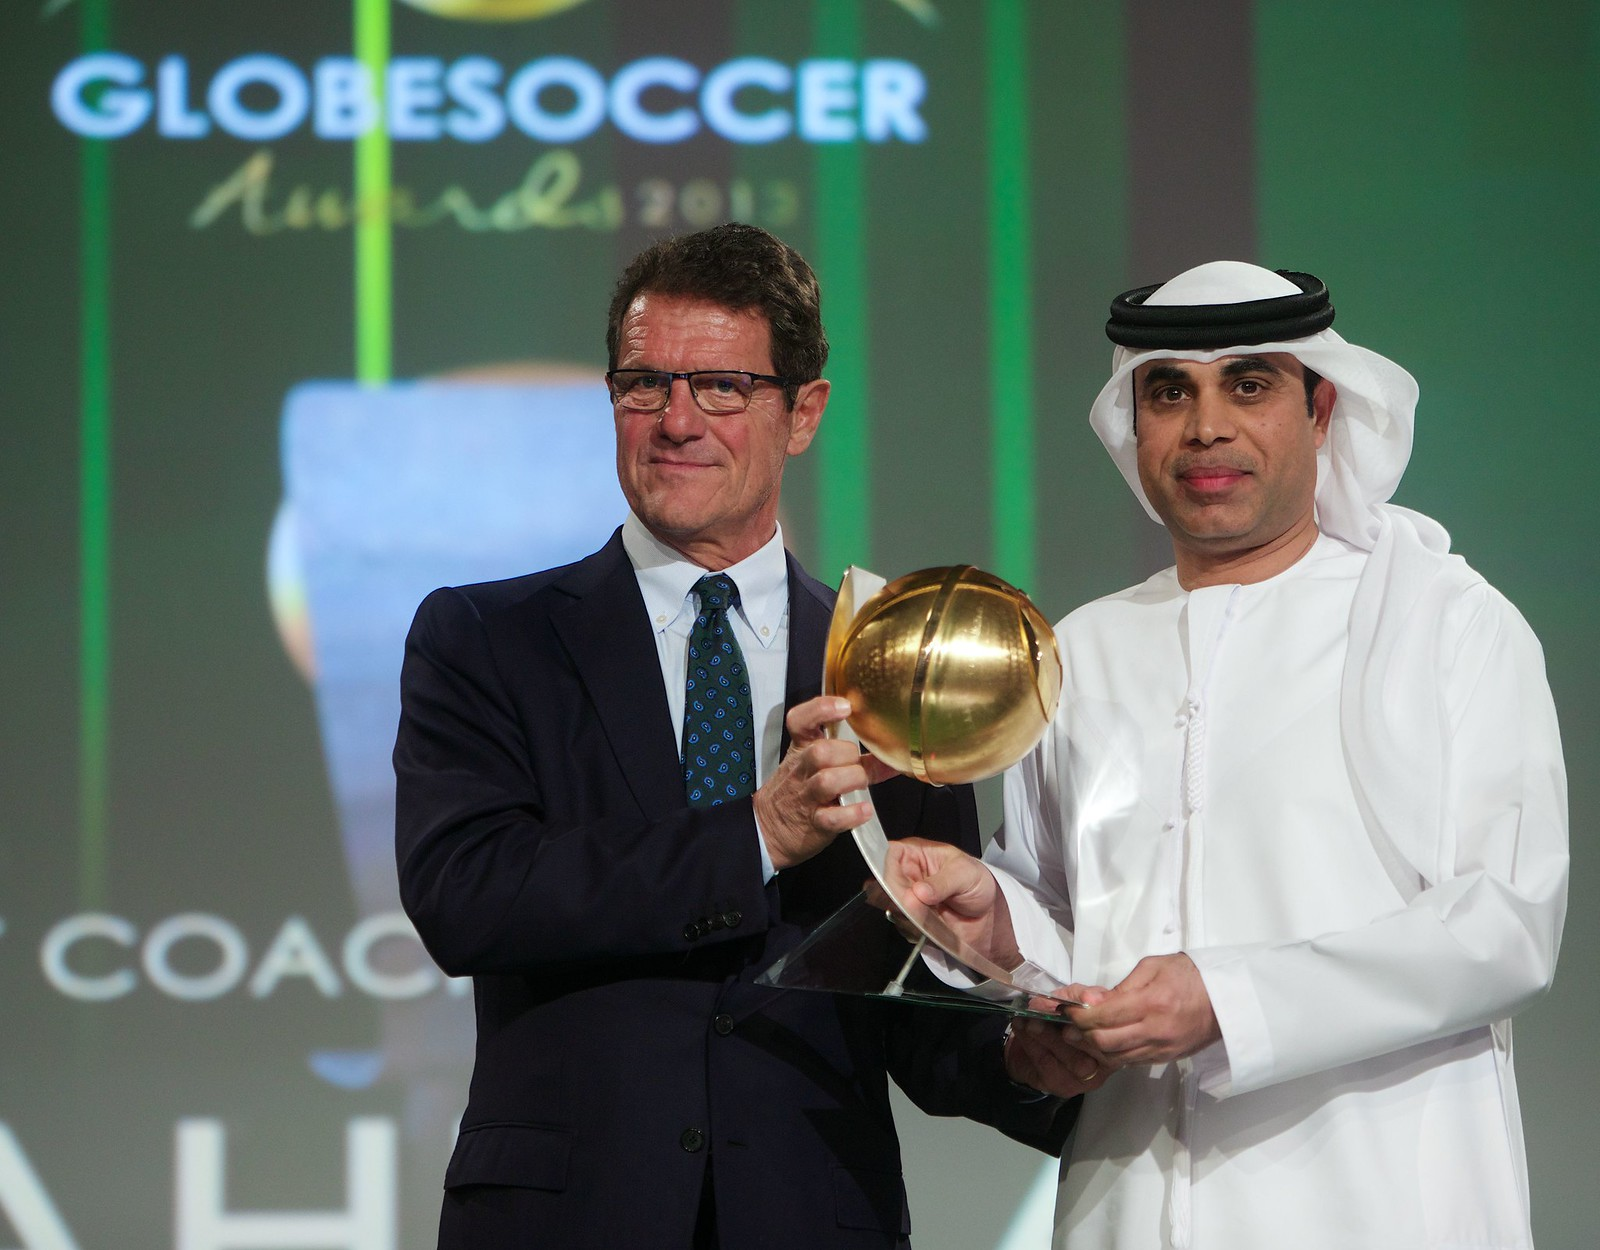 Globe Soccer Awards 173